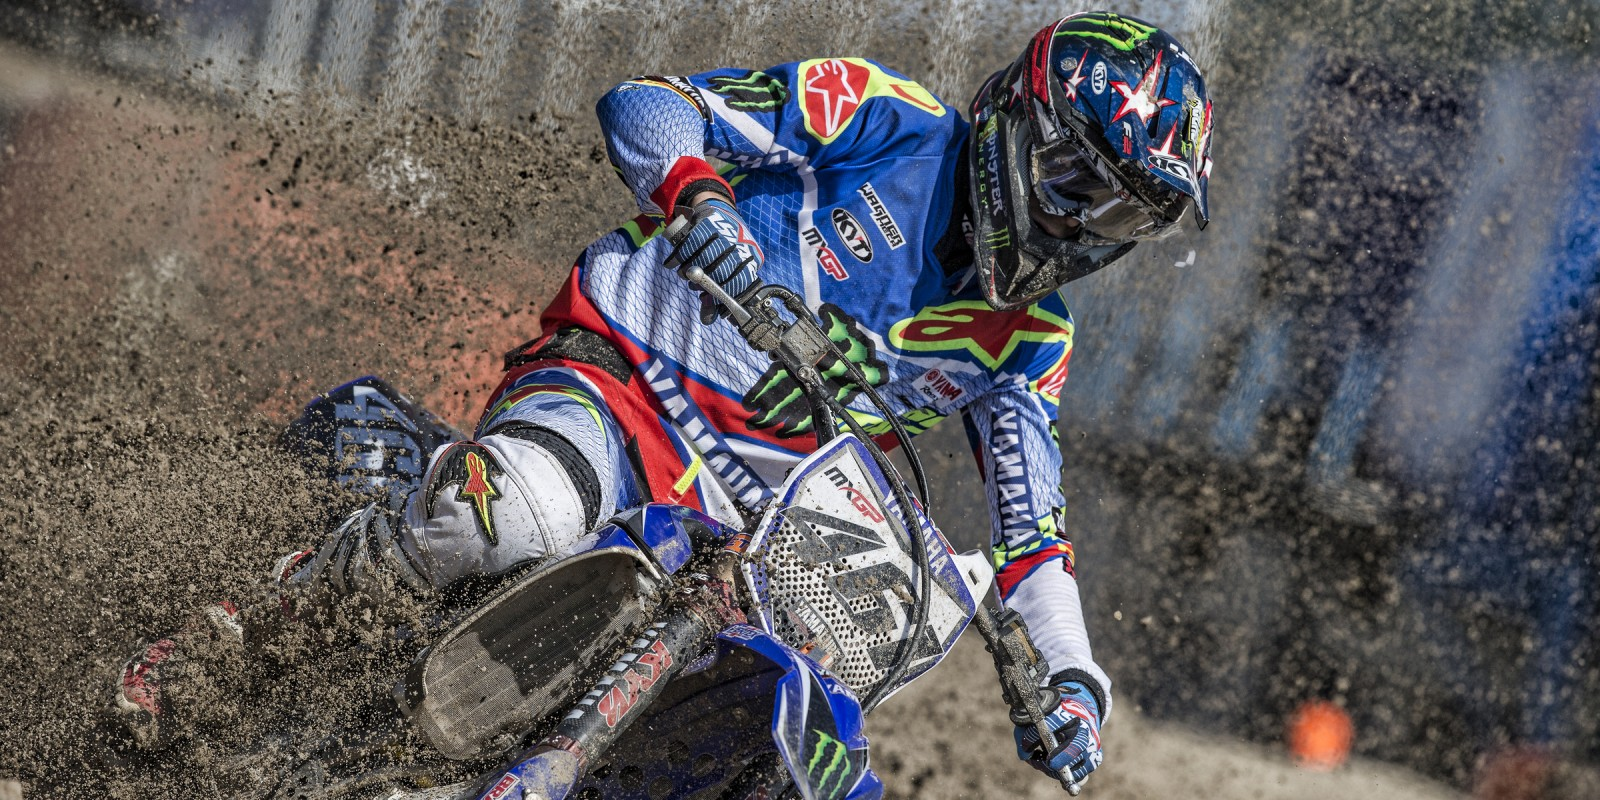 Romain Febvre at the 2016 MXGP of the Netherlands